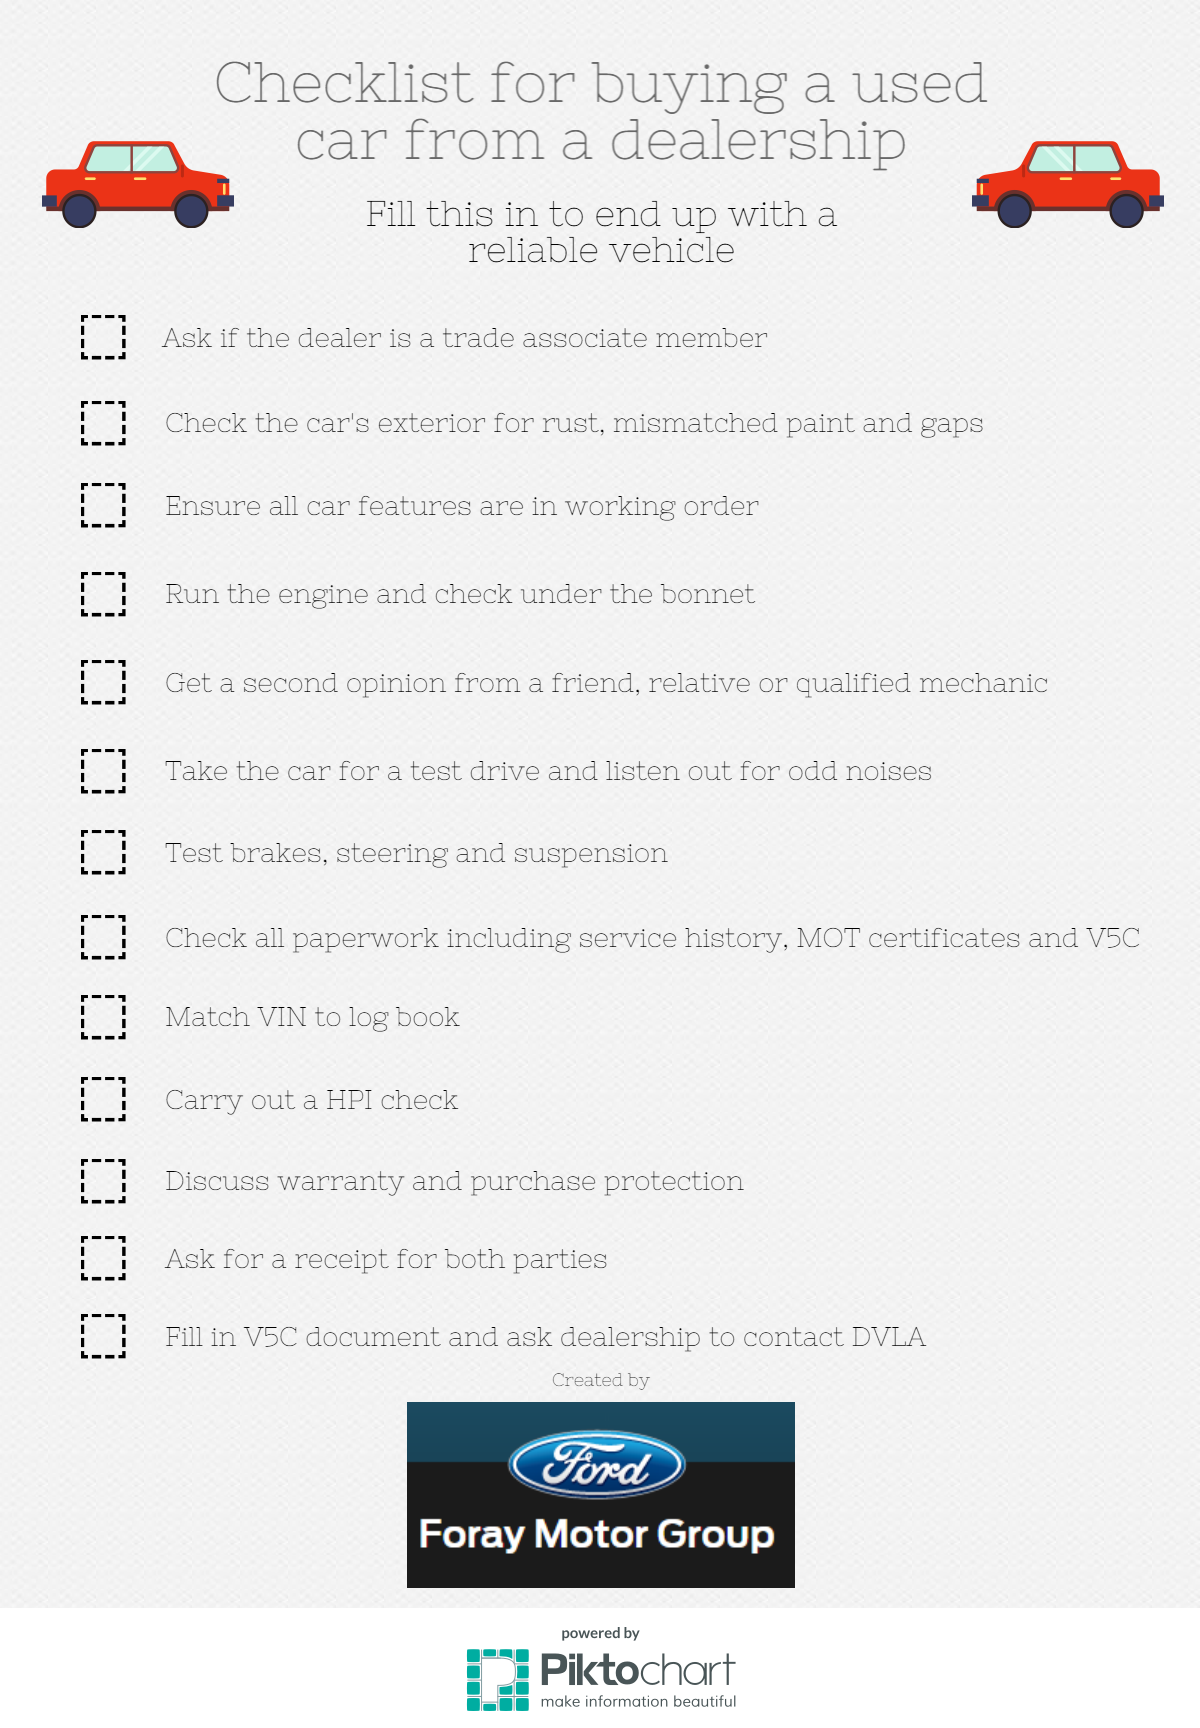 print our checklist